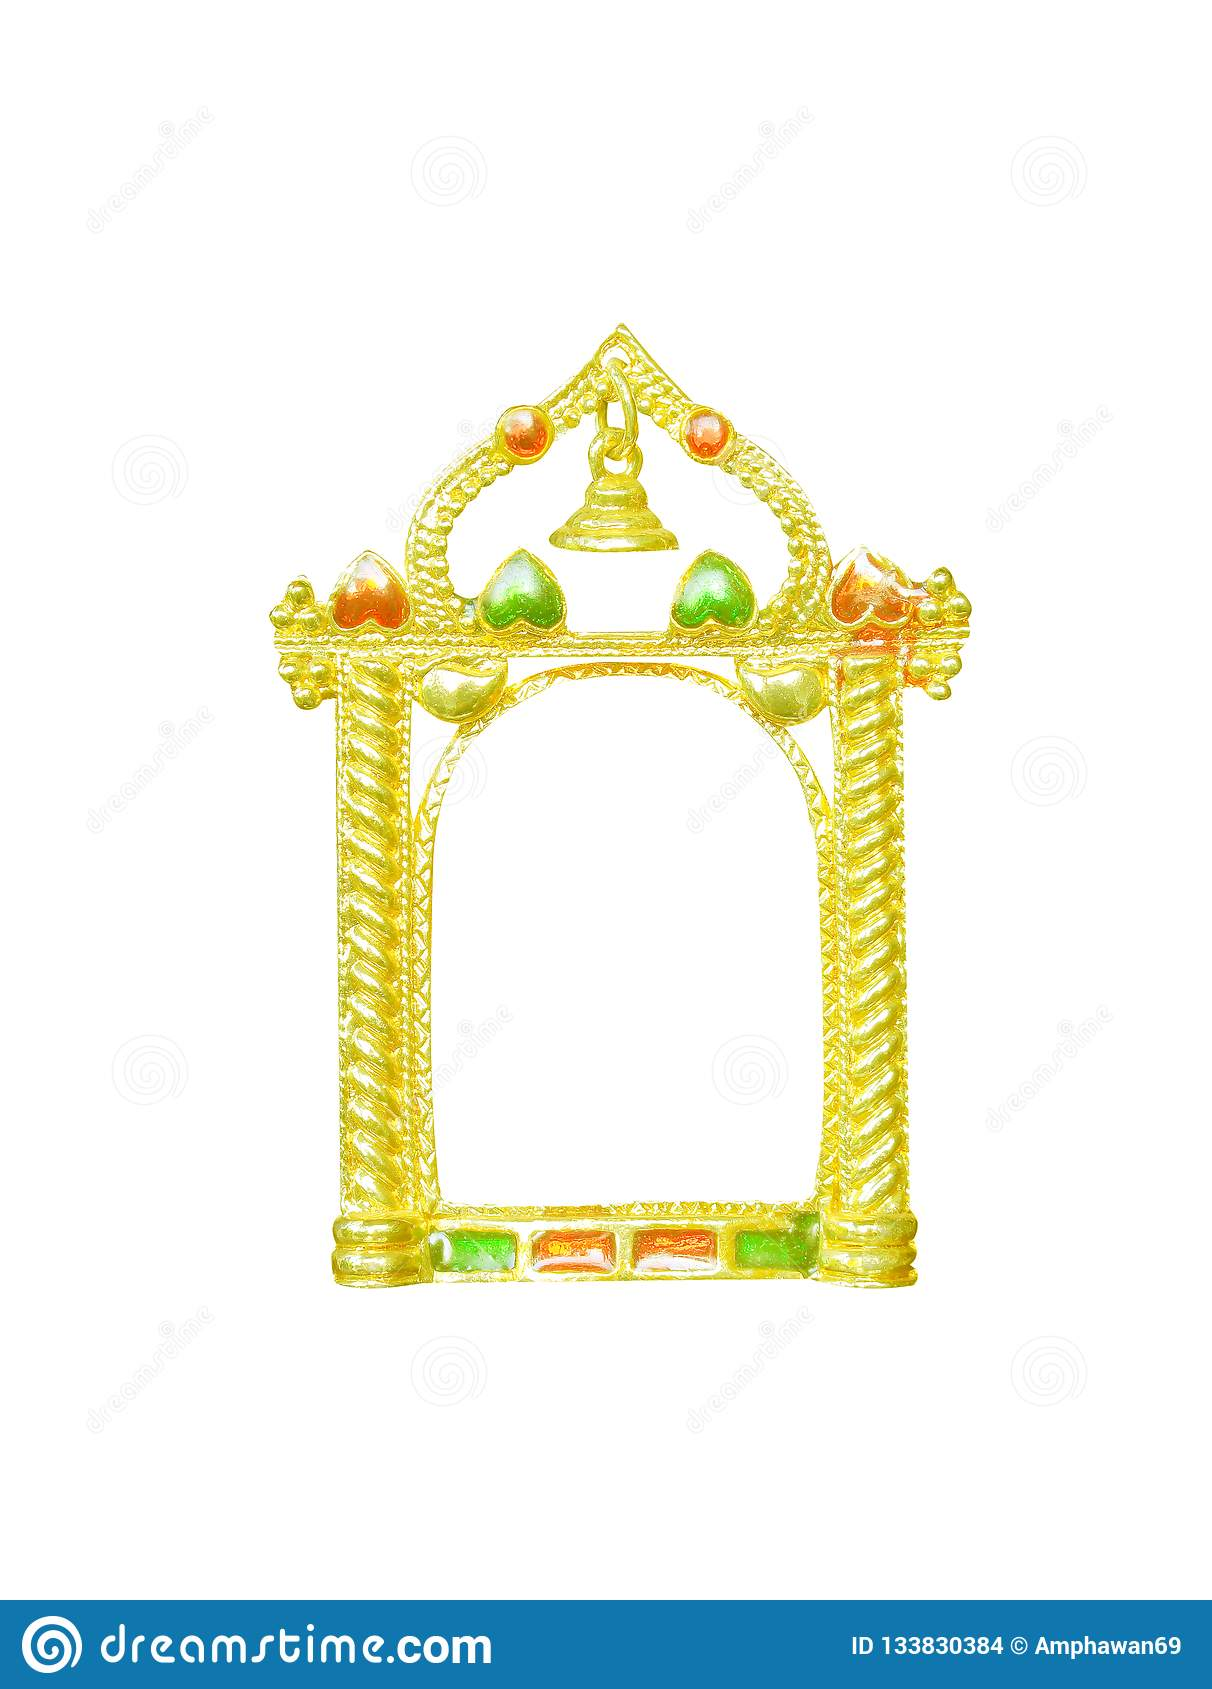 Gold picture frame with bell and decoration heart shape patterns isolated on white background,modern style